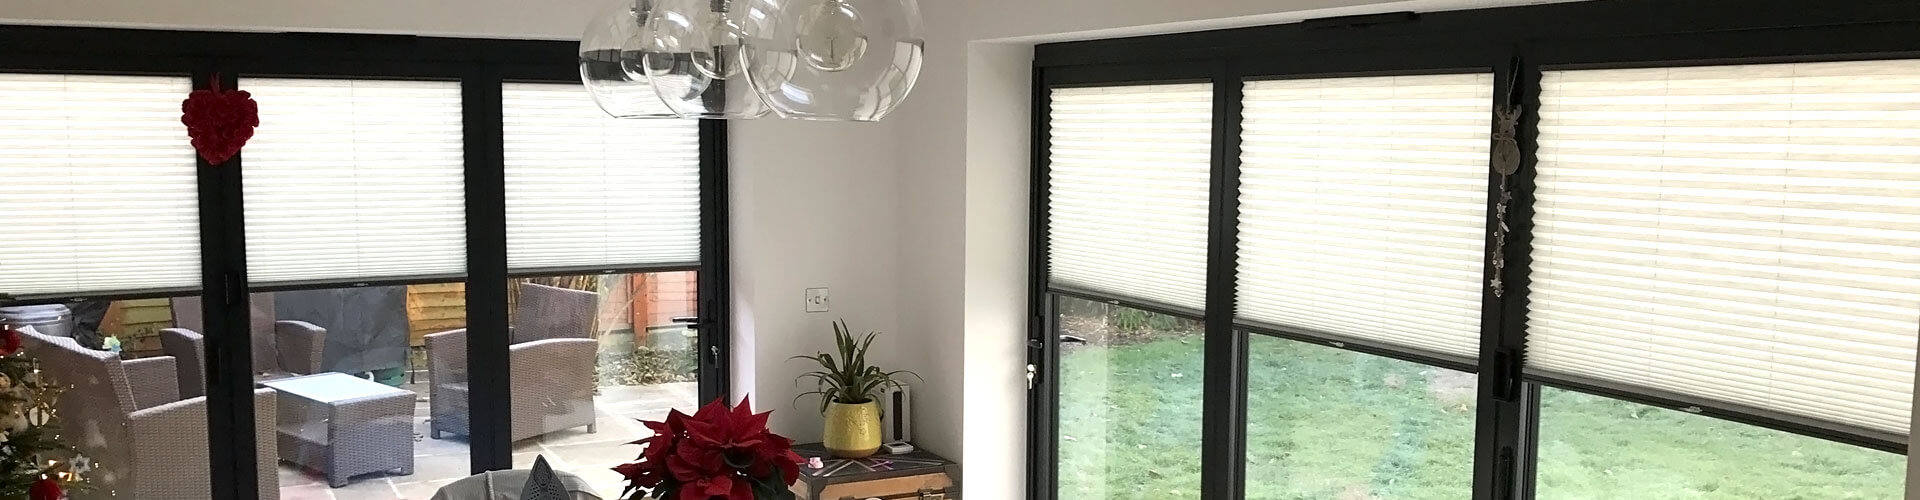 Bifold Door Blinds - Hero Image